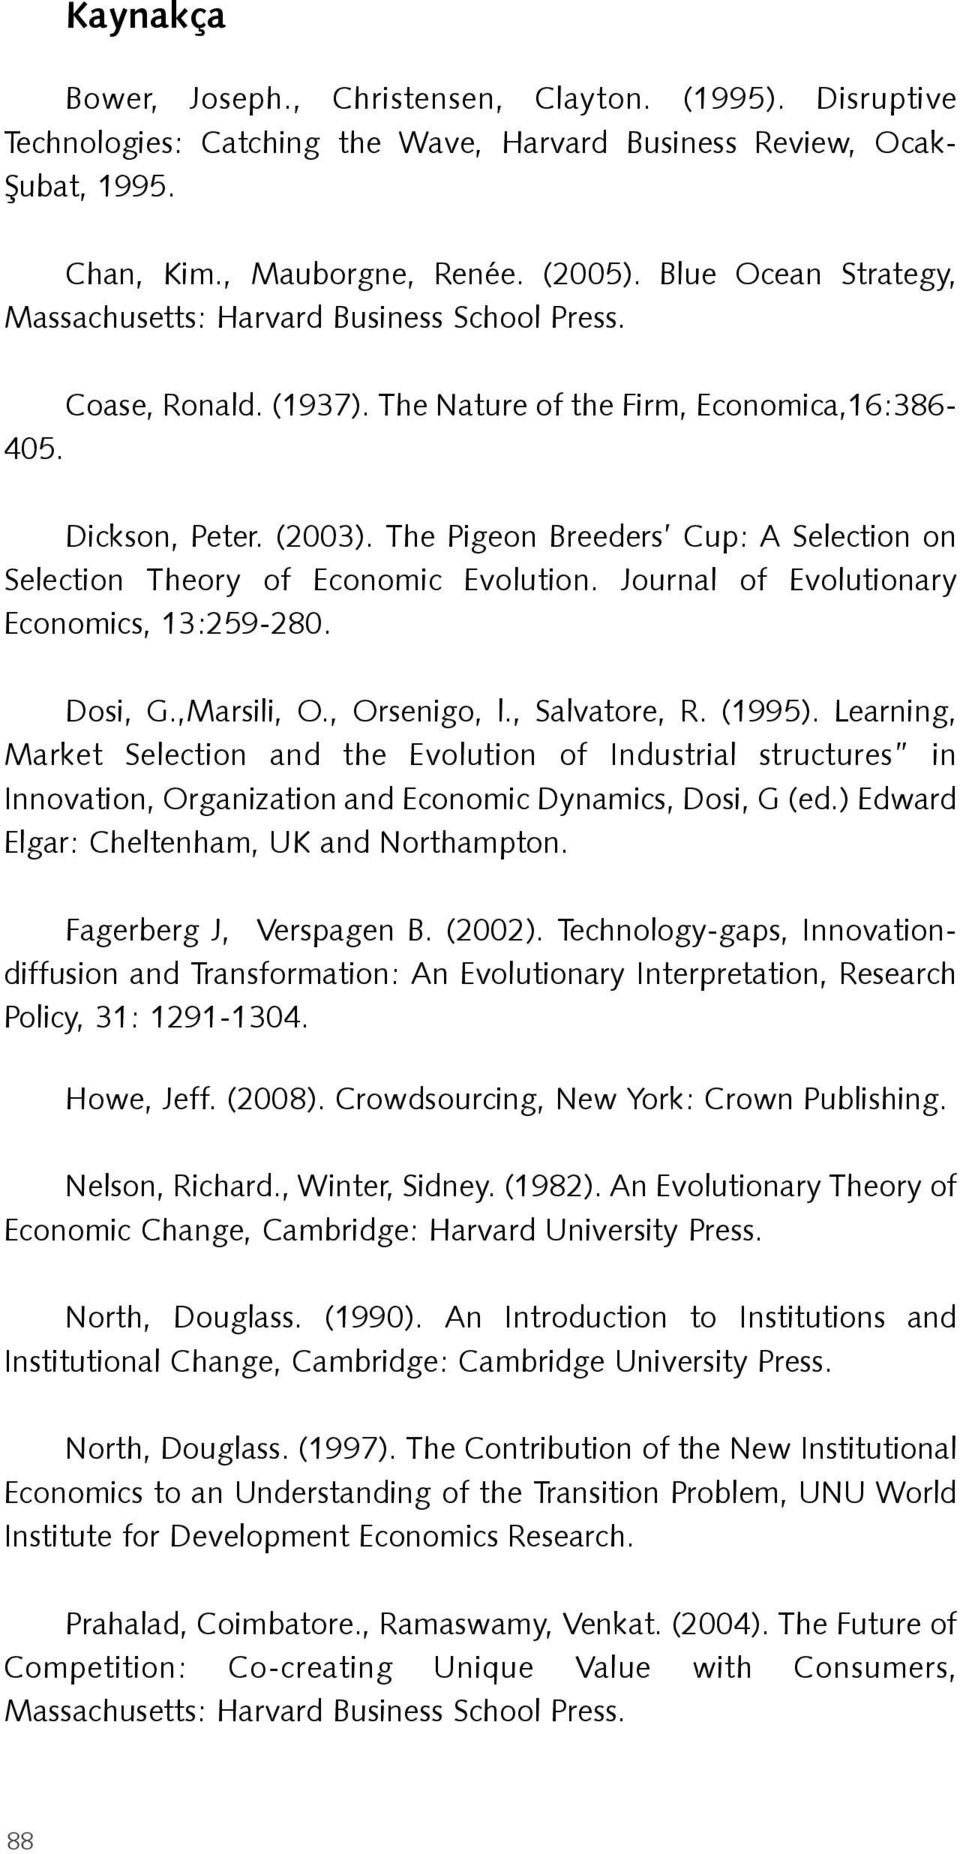 The Pigeon Breeders Cup: A Selection on Selection Theory of Economic Evolution. Journal of Evolutionary Economics, 13:259-280. Dosi, G.,Marsili, O., Orsenigo, l., Salvatore, R. (1995).